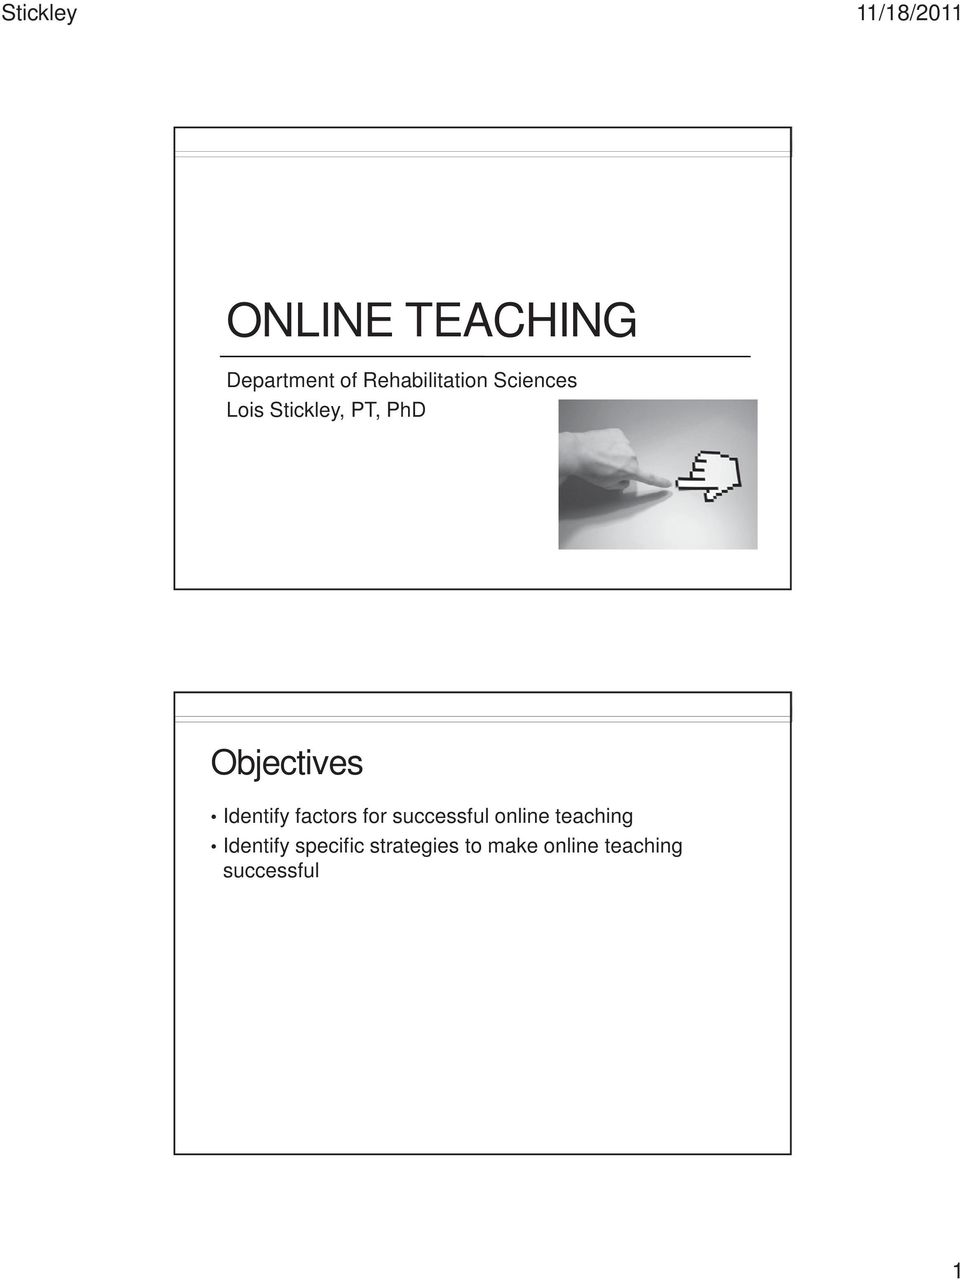 Identify factors for successful online teaching